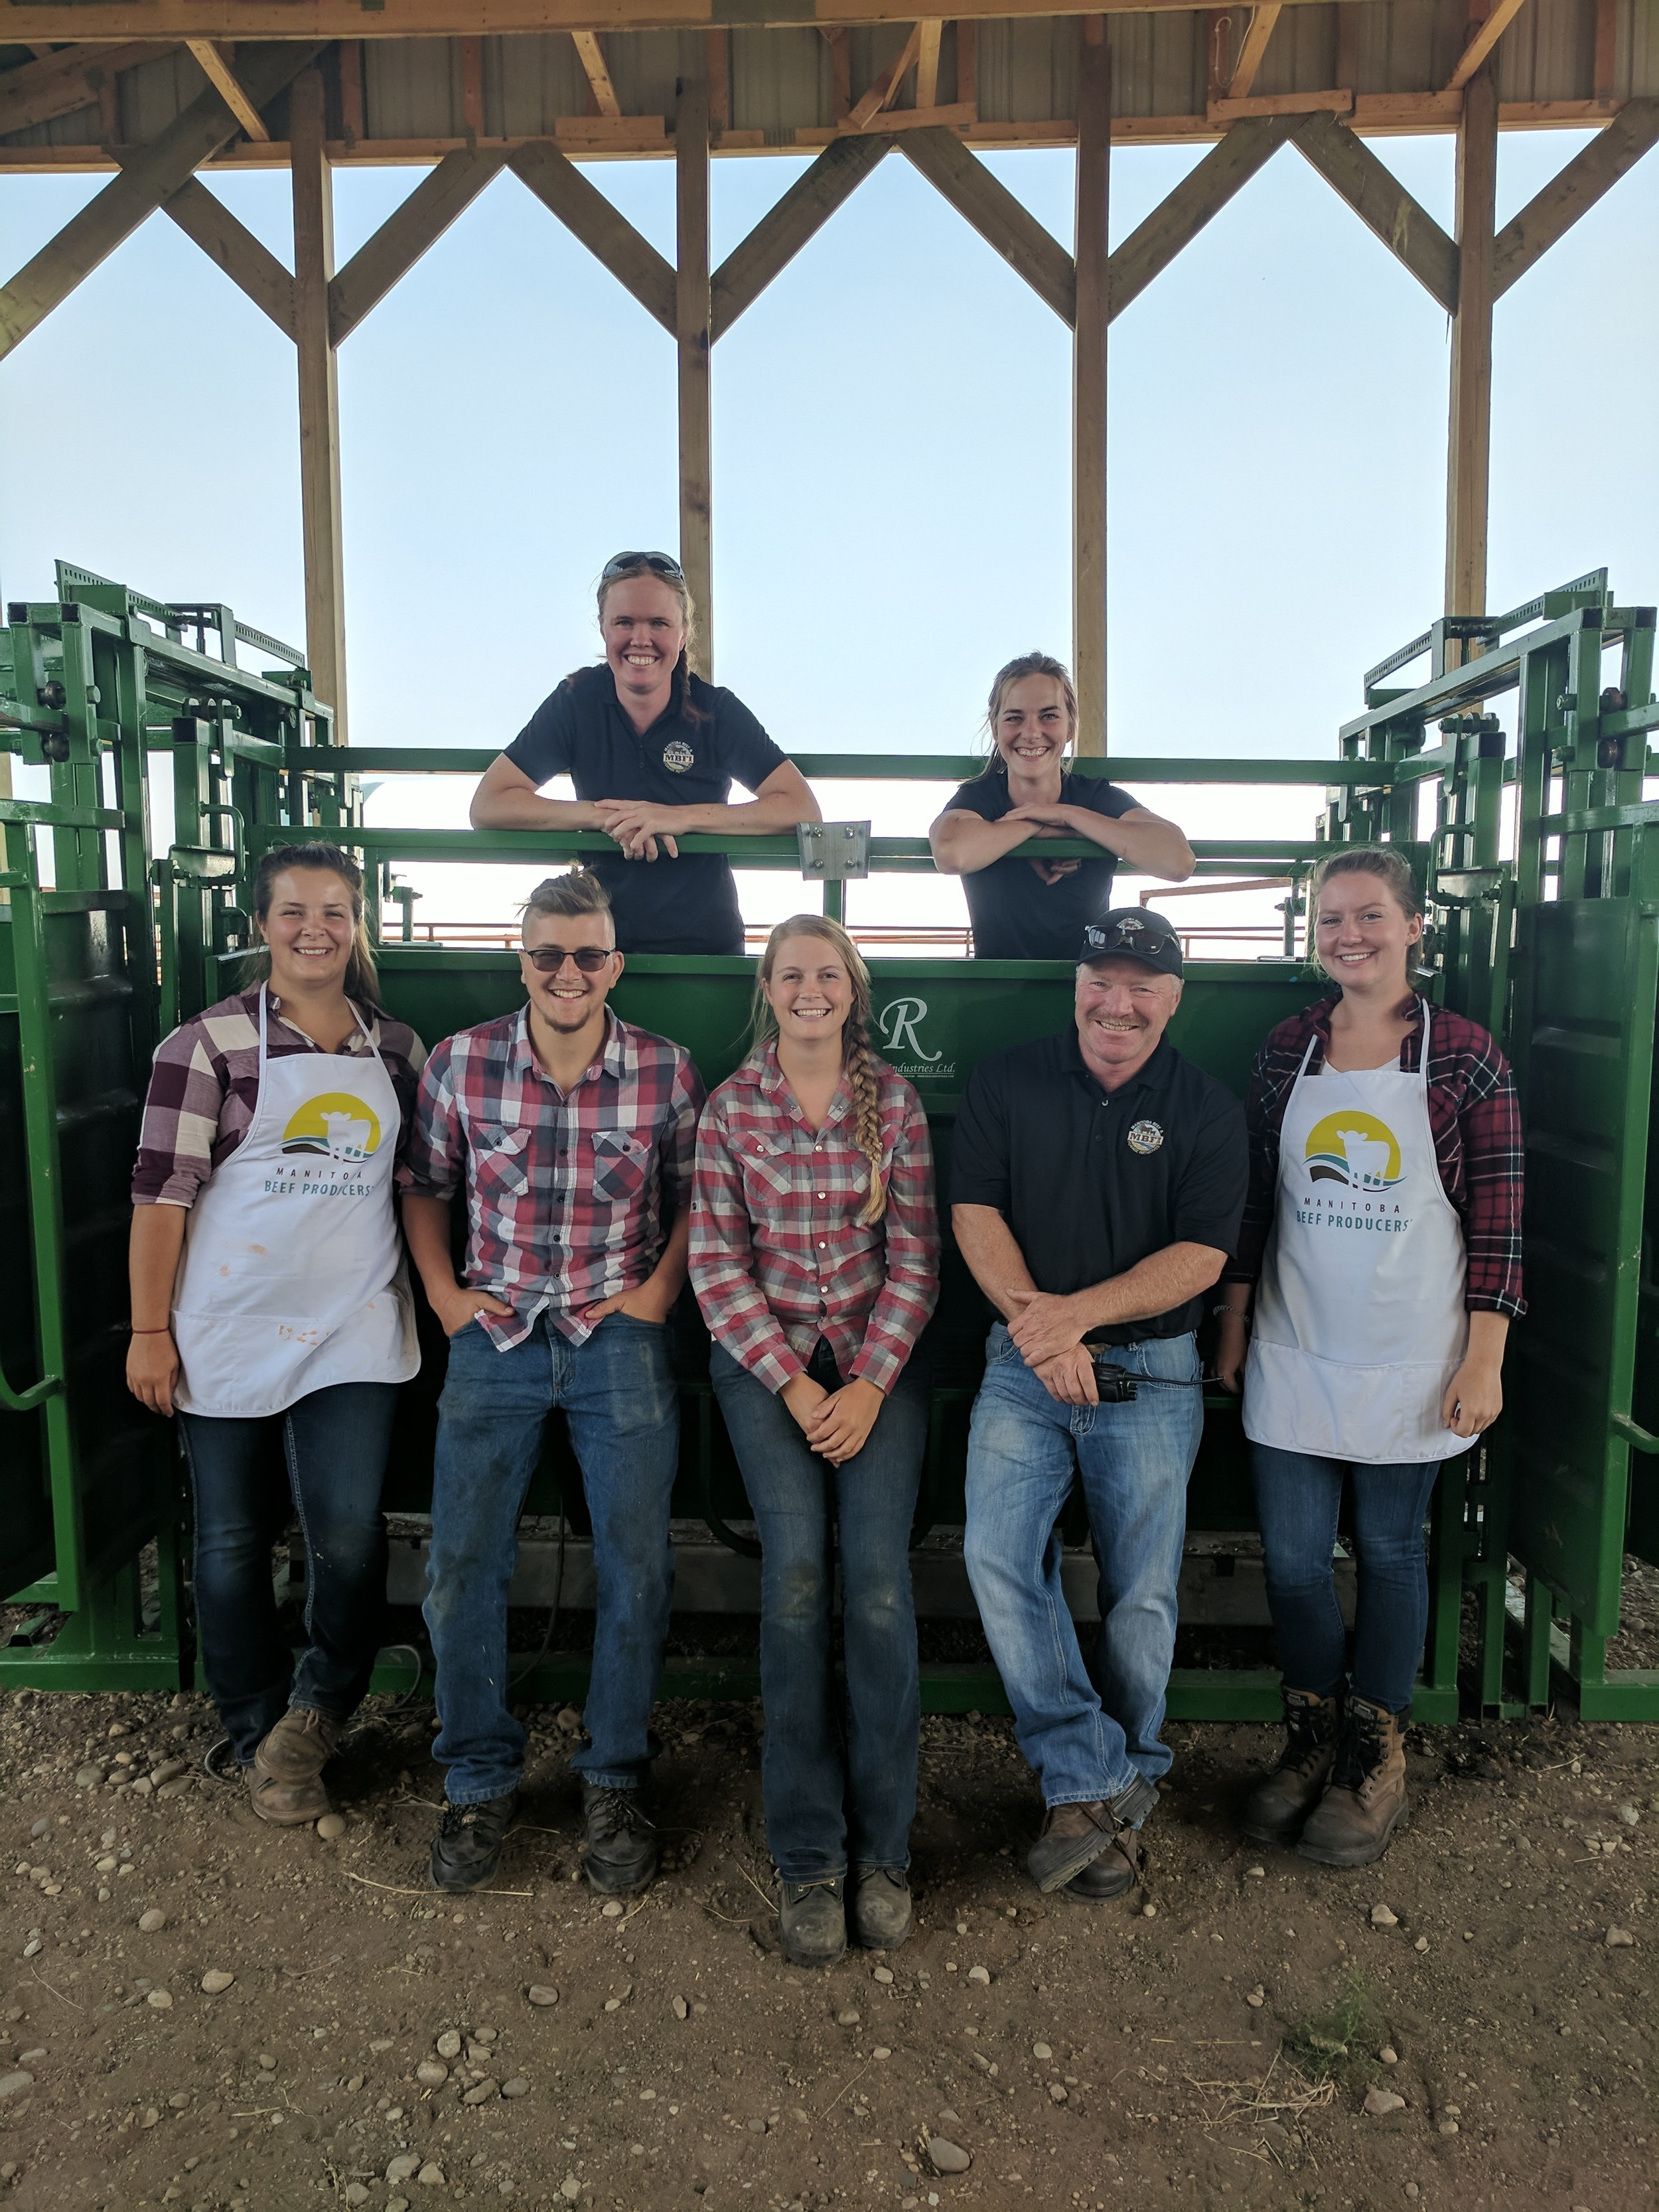 MBFI summer staff at the Brookdale Pasture Day 2017